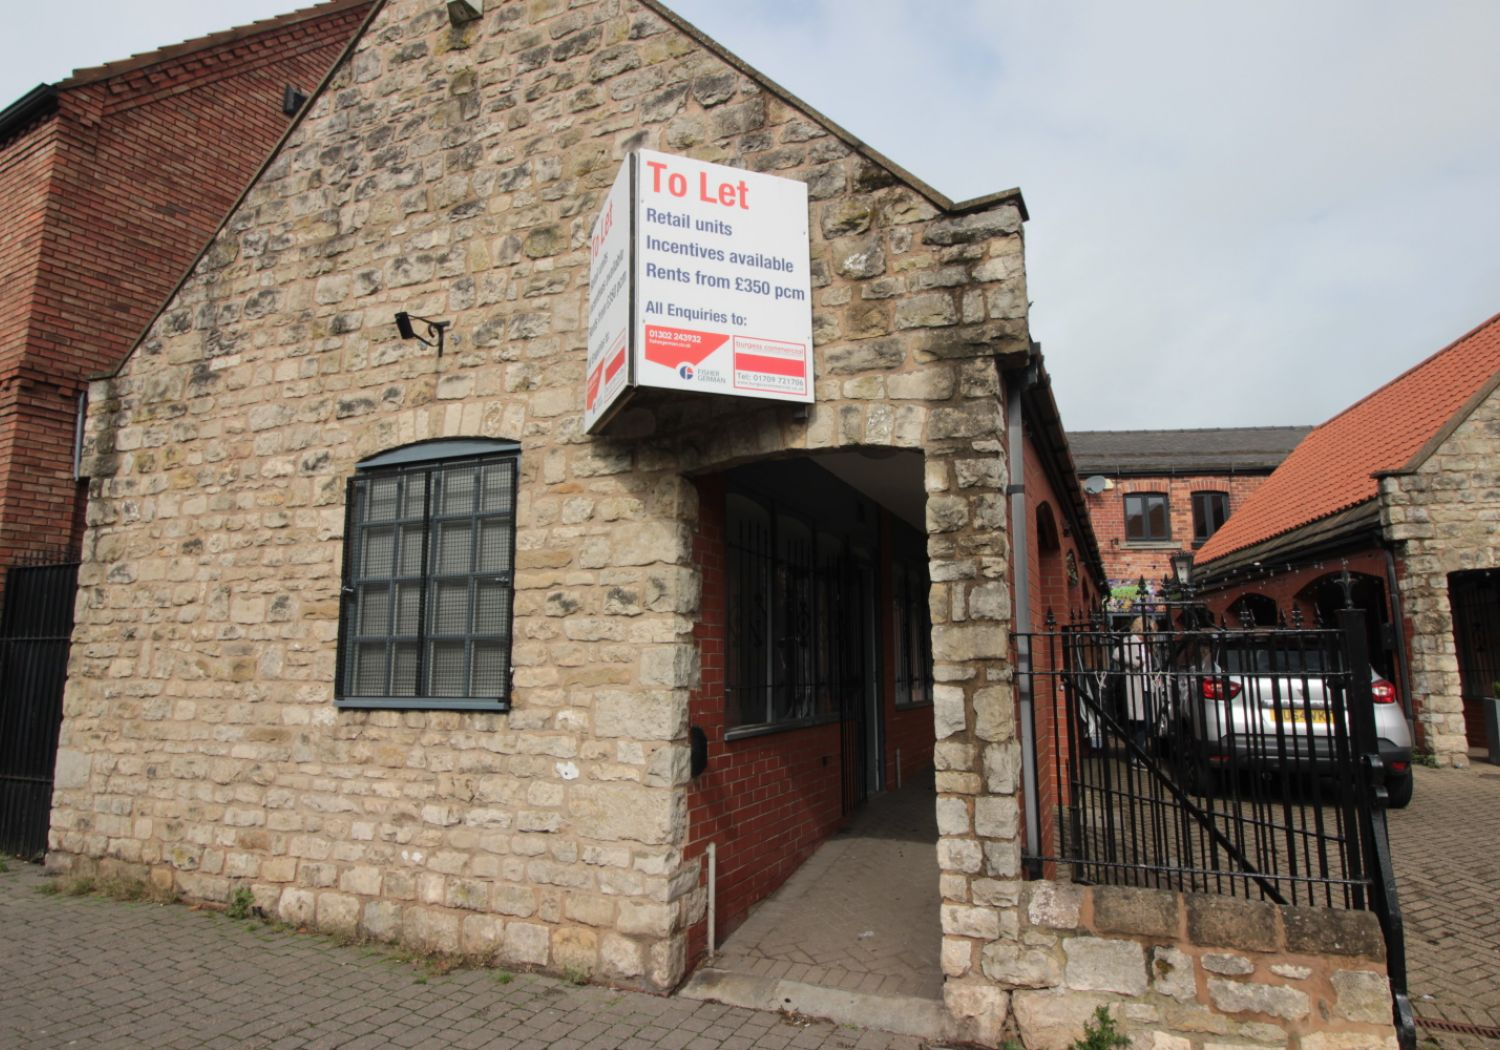 Attractive & modern retail sales unit in the heart of Conisbrough.